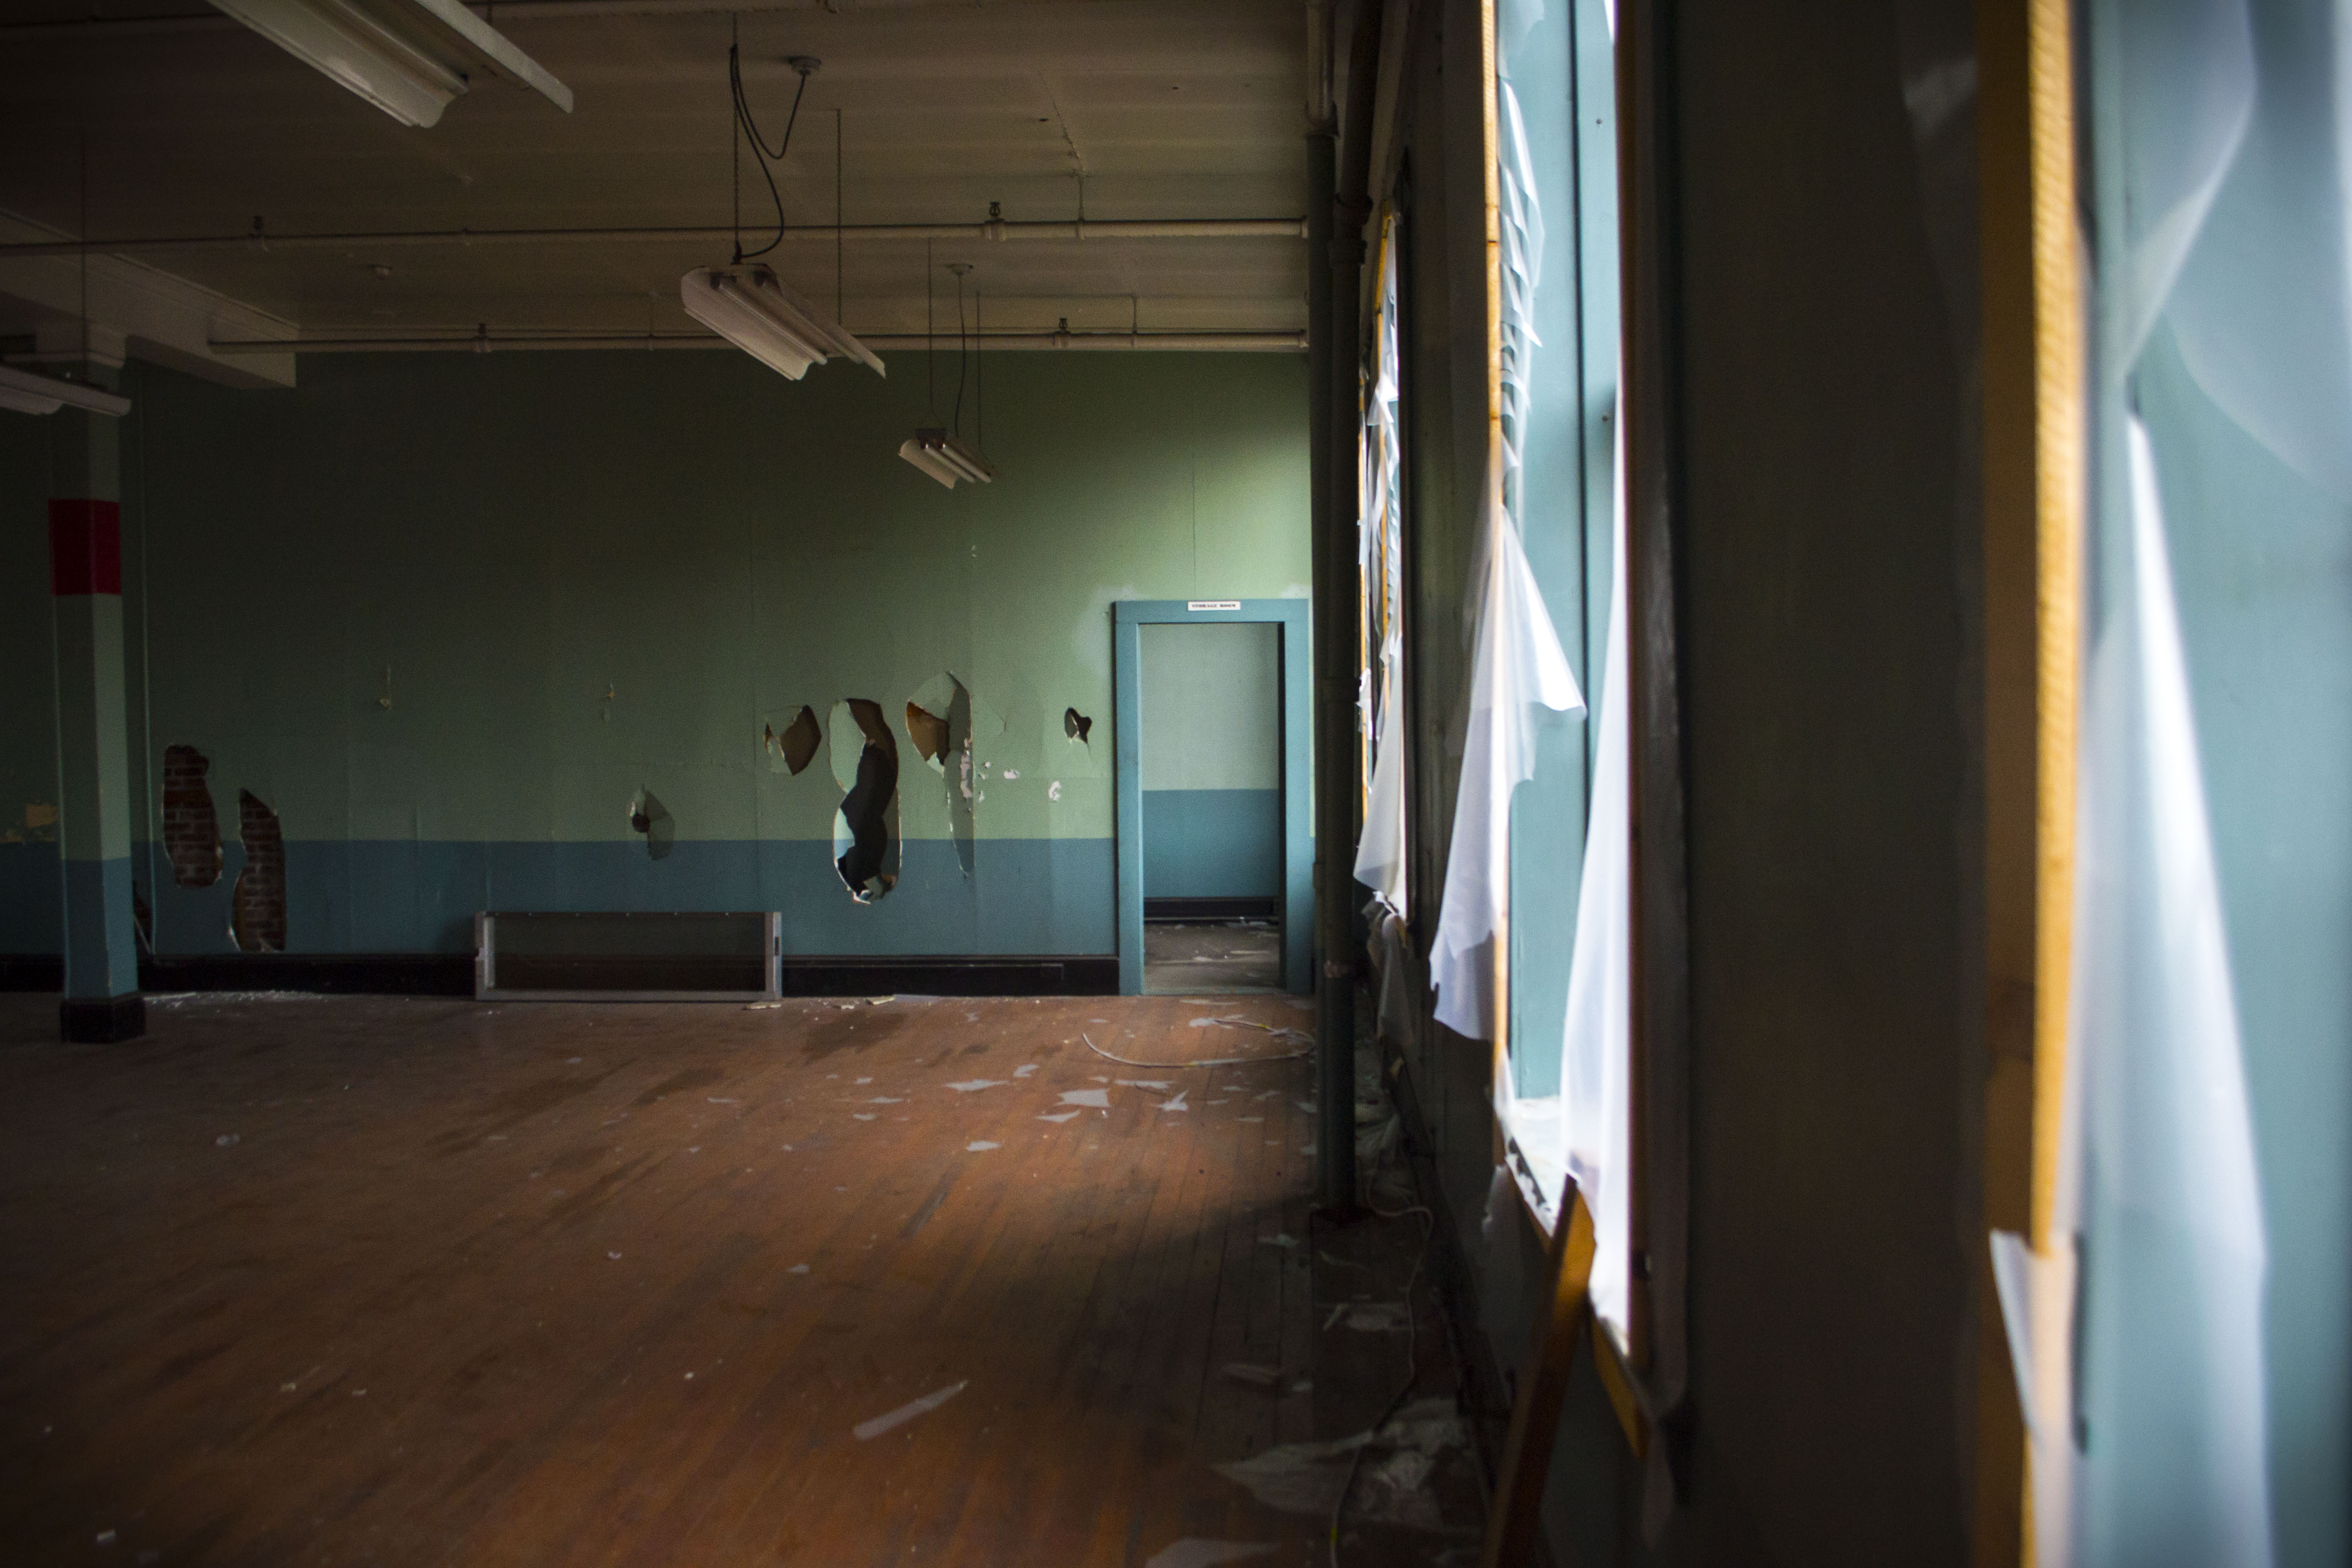 A room in 19 Mill, formerly the home of office space for order processing, now sits, battered. ALAN BENNETT/Journal Tribune